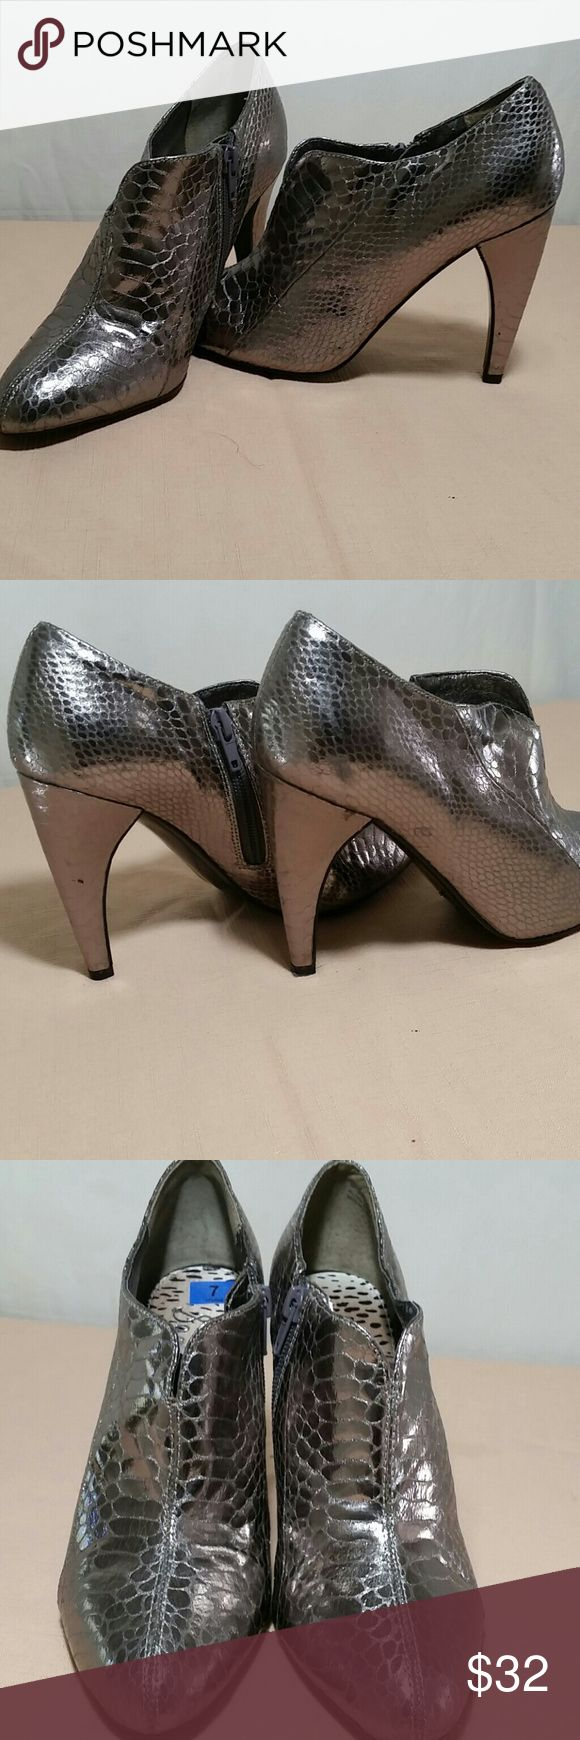 SAM EDELMAN Silver Ankle Boots Size 7 M Beautiful SAM EDELMAN Silver ankle boits.  These ankle boots are a size 7 M.  This pair of SAM EDELMAN Shoes are in excellent like new condition. Sam Edelman Shoes Ankle Boots & Booties